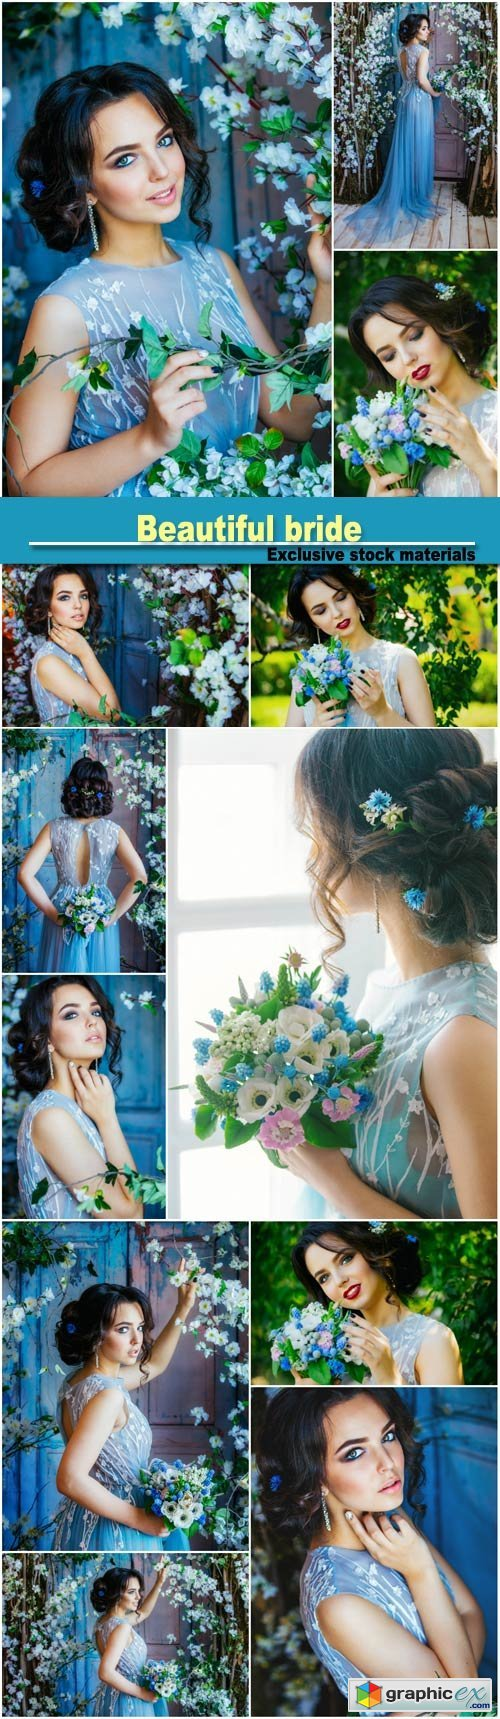 Beautiful bride, girl with flowers